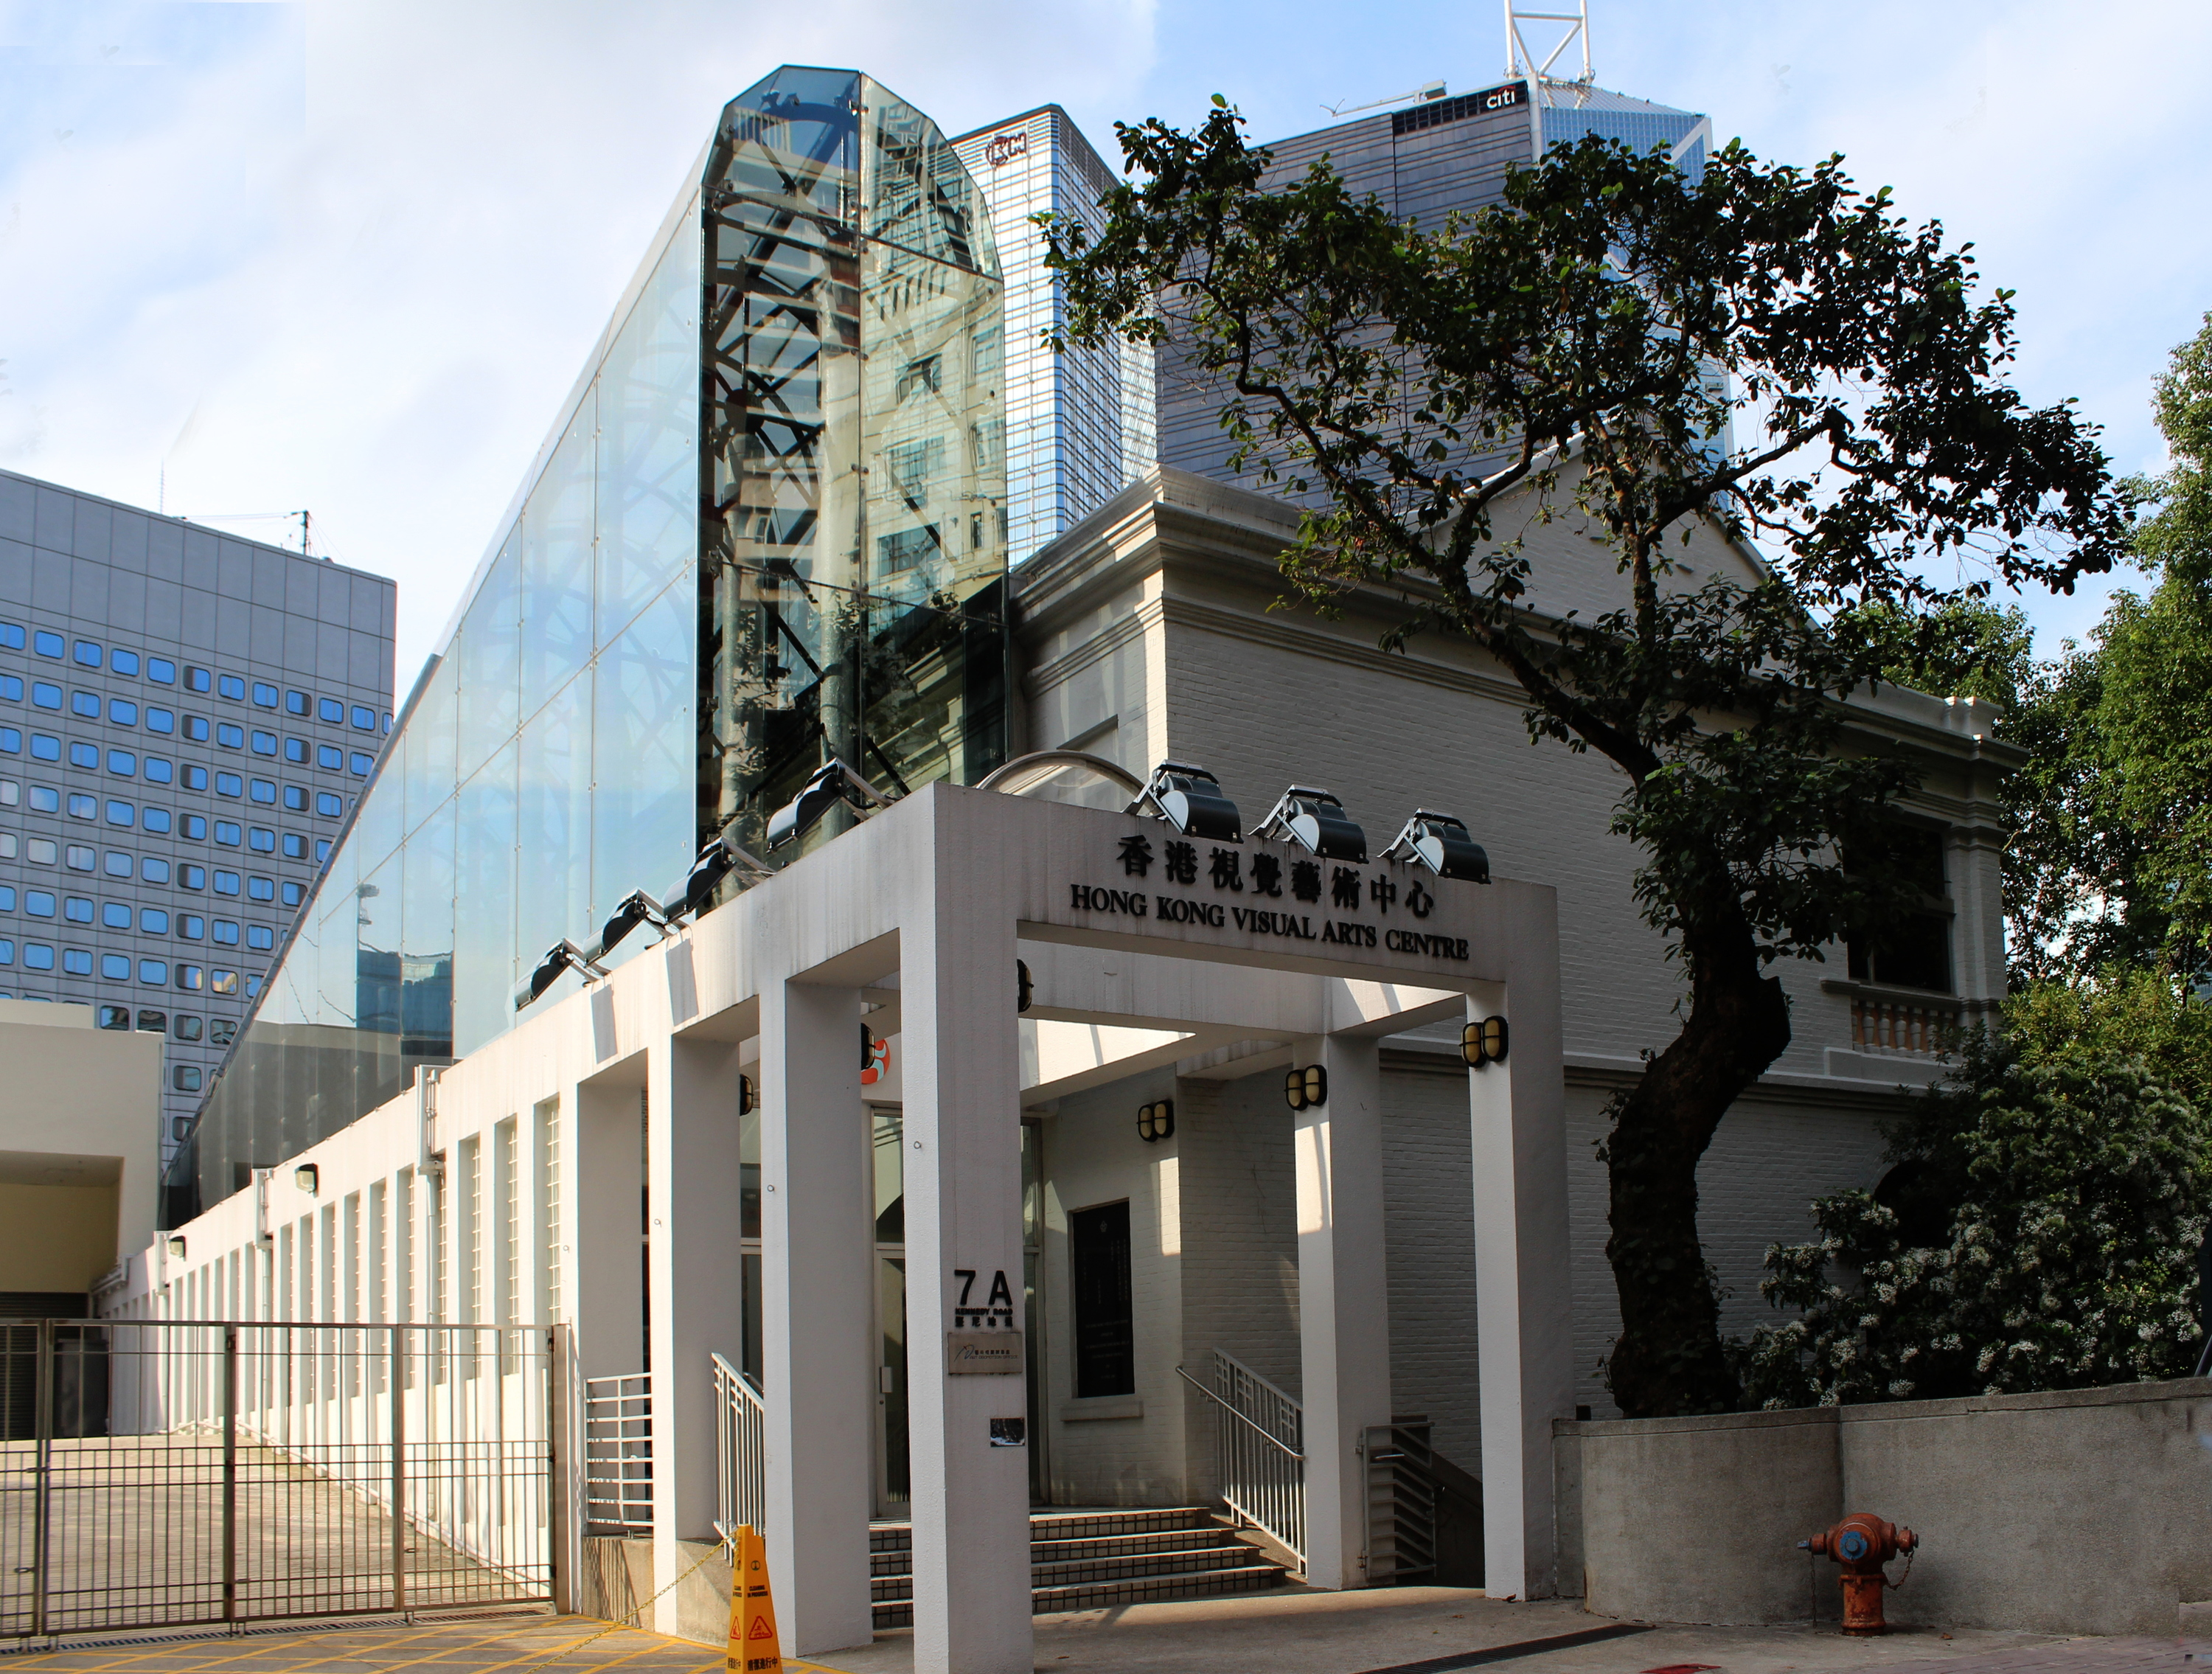 Hong Kong Visual Arts Centre